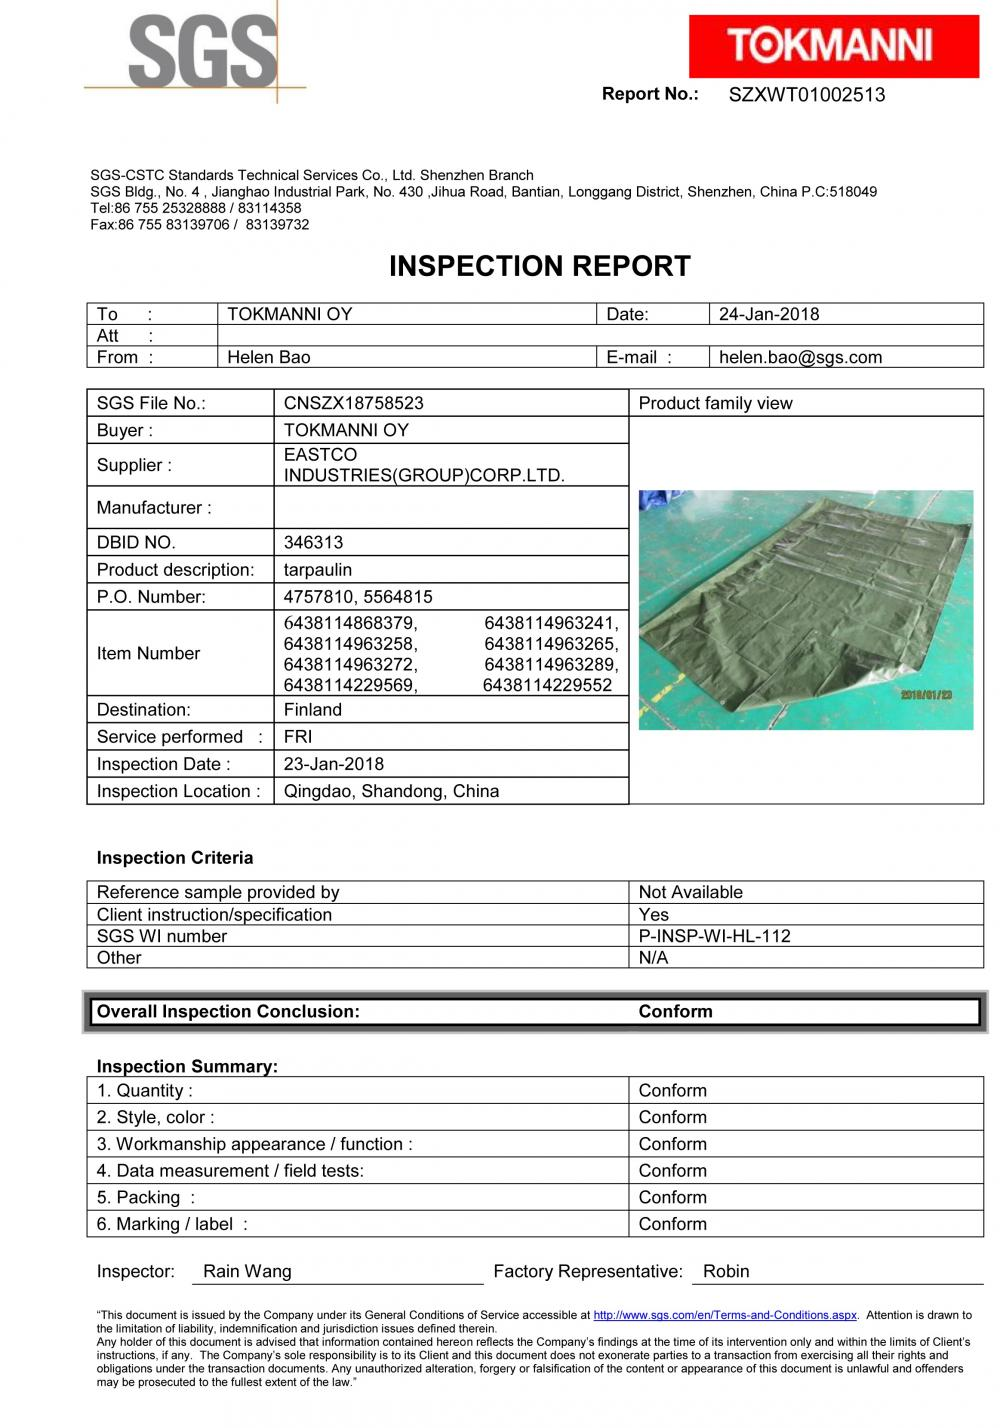 SGS inspection report